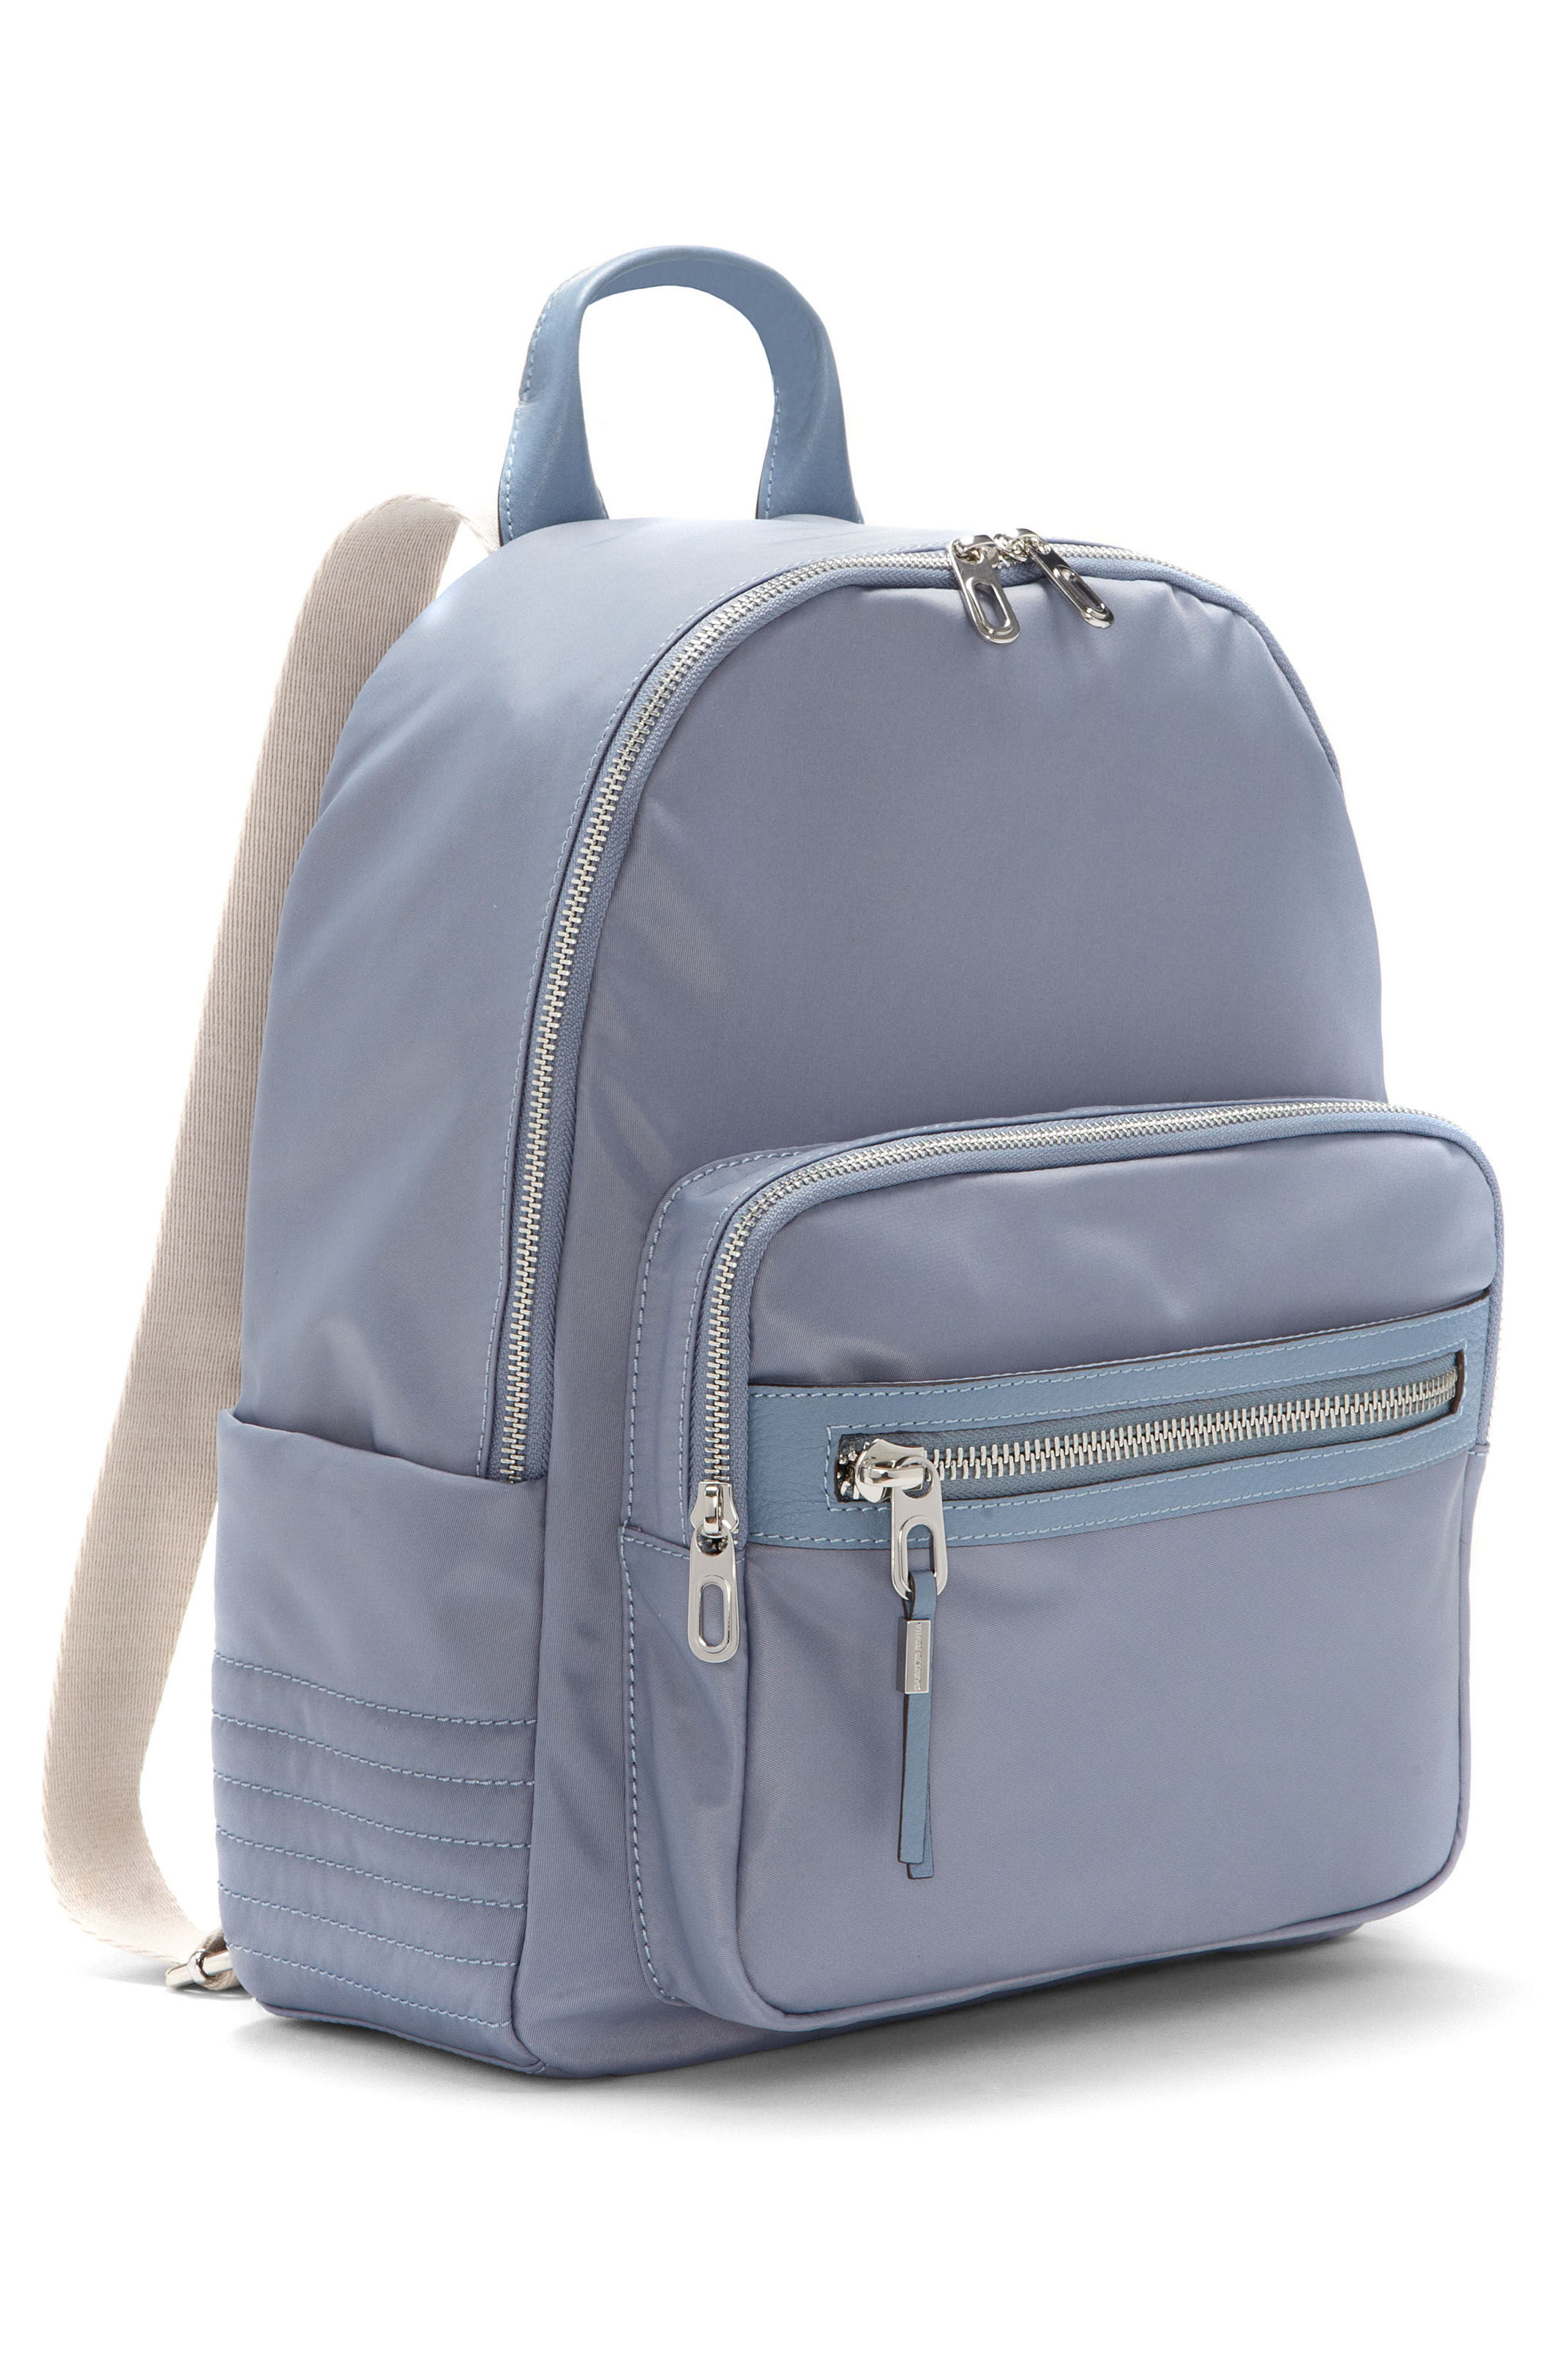 Action Nylon Backpack,                             Alternate thumbnail 4, color,                             Serenity Blue